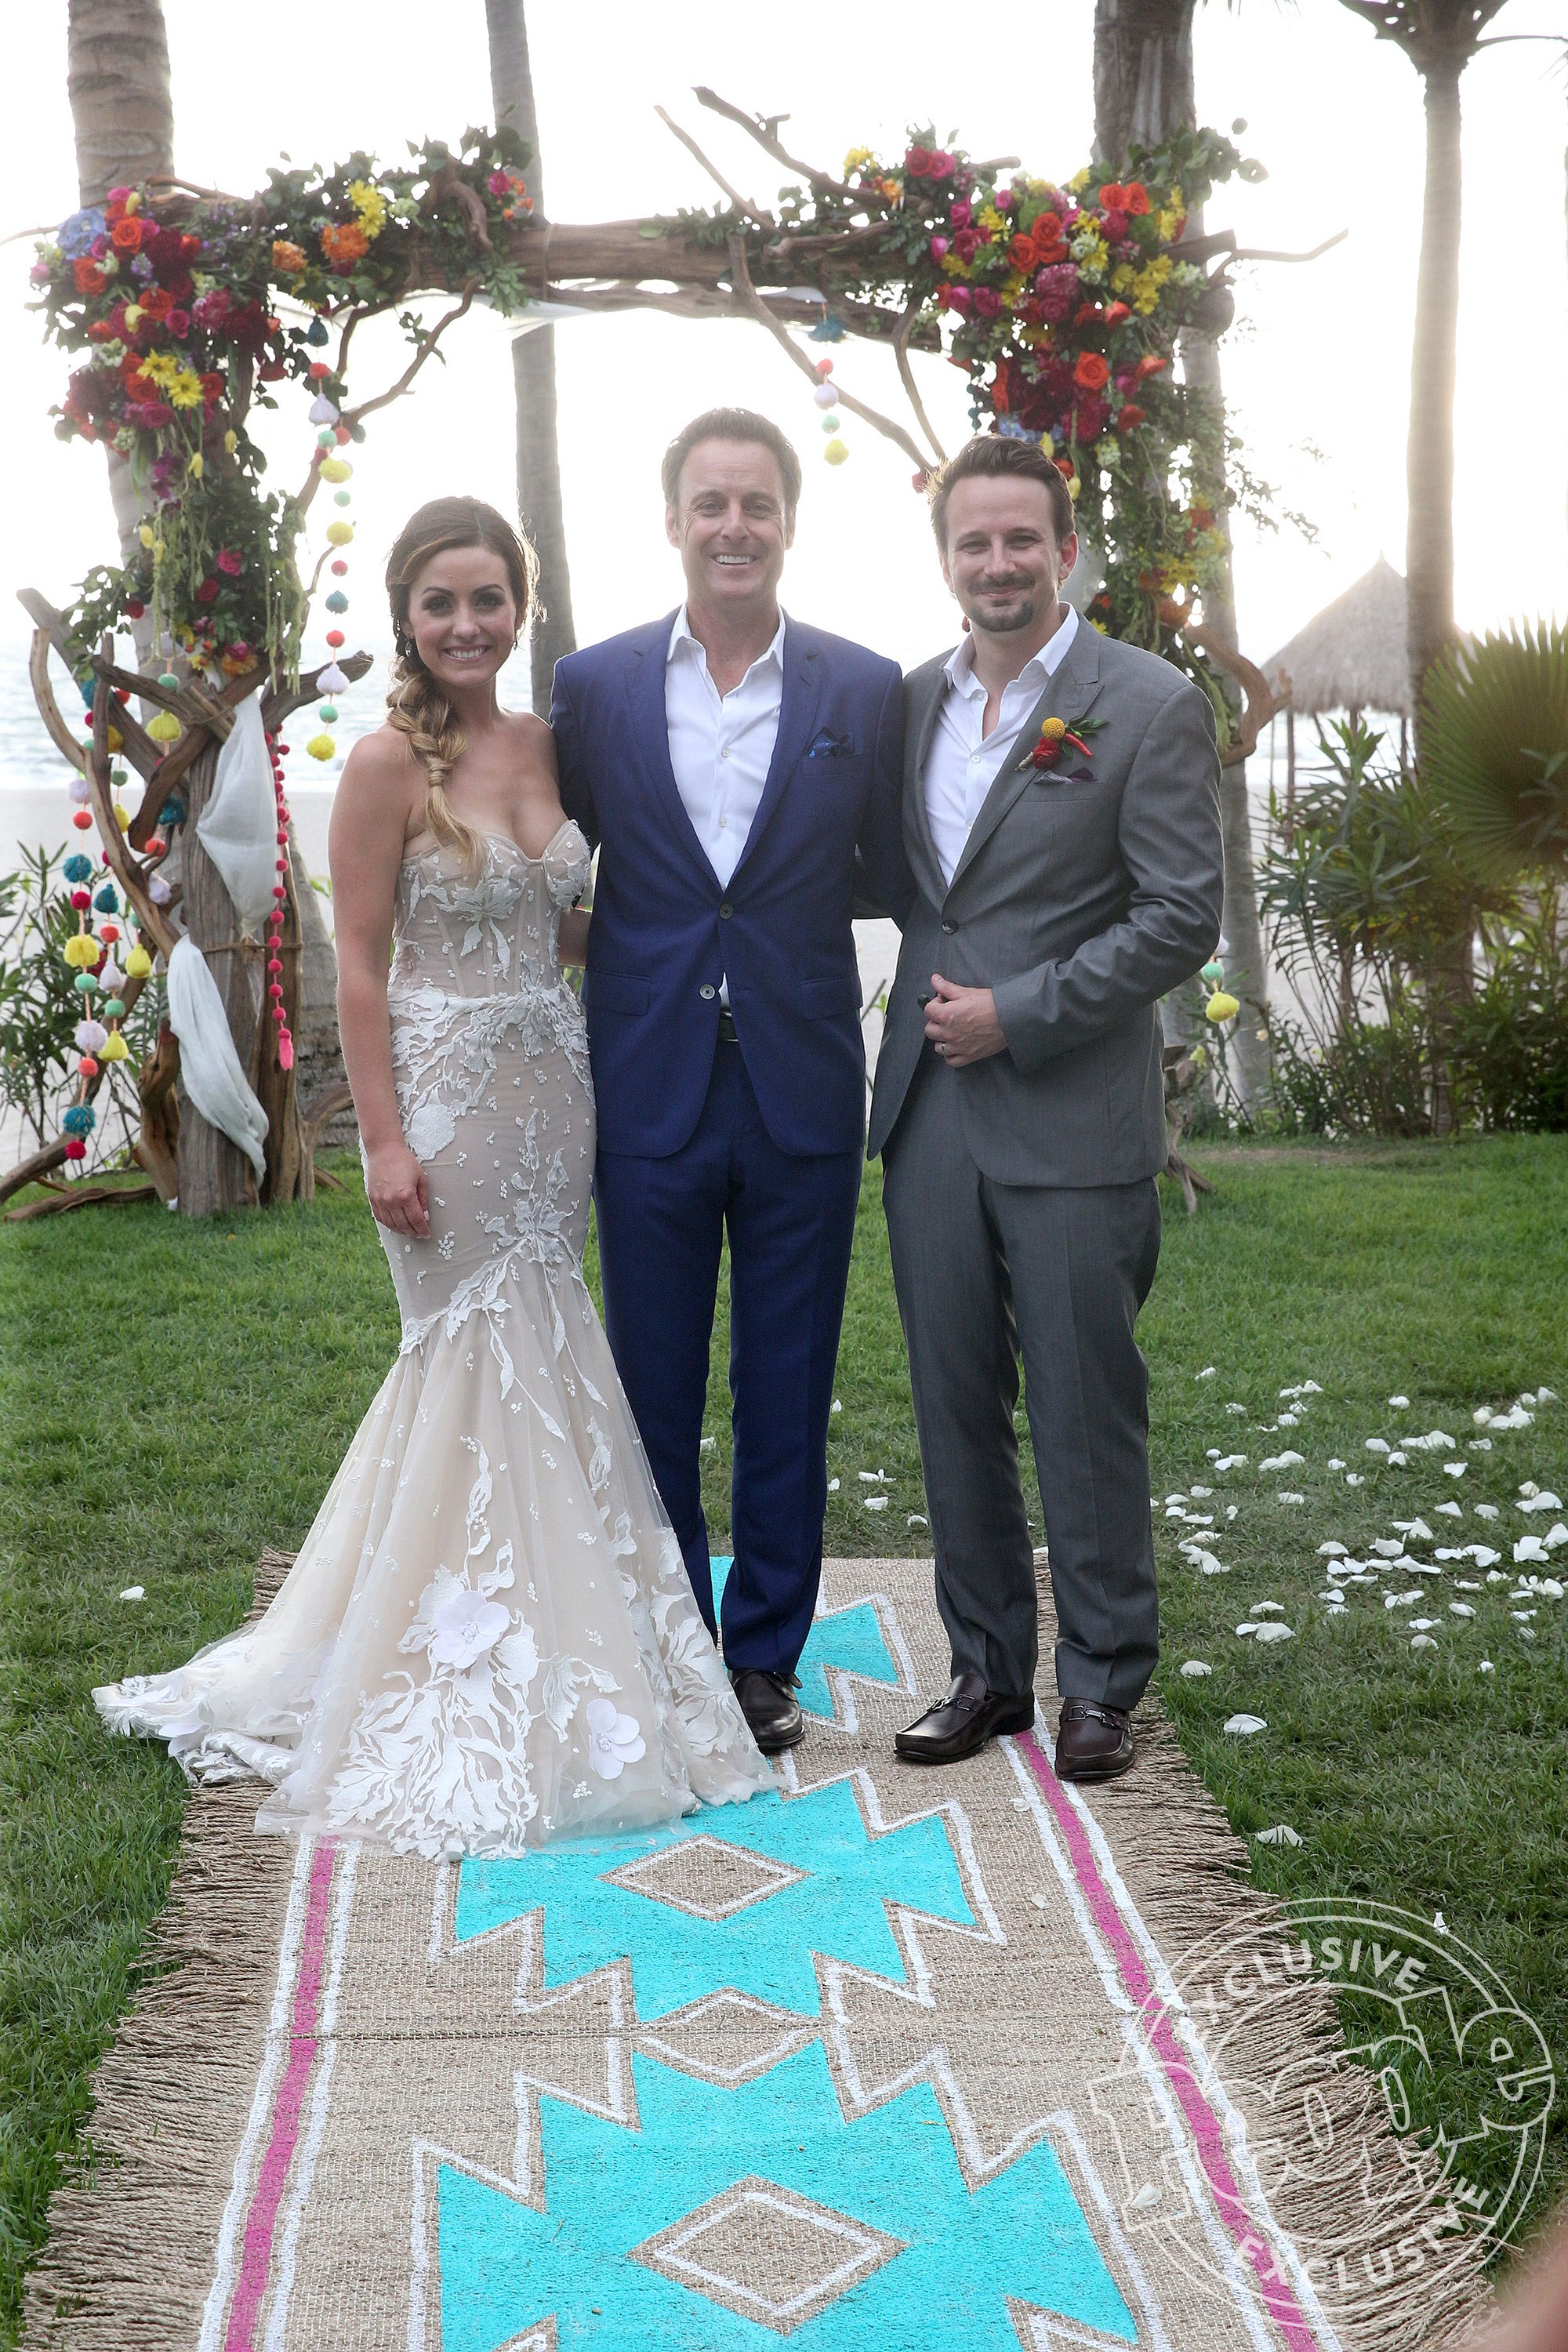 Read more about Carly and Evan's wedding on  People's website.